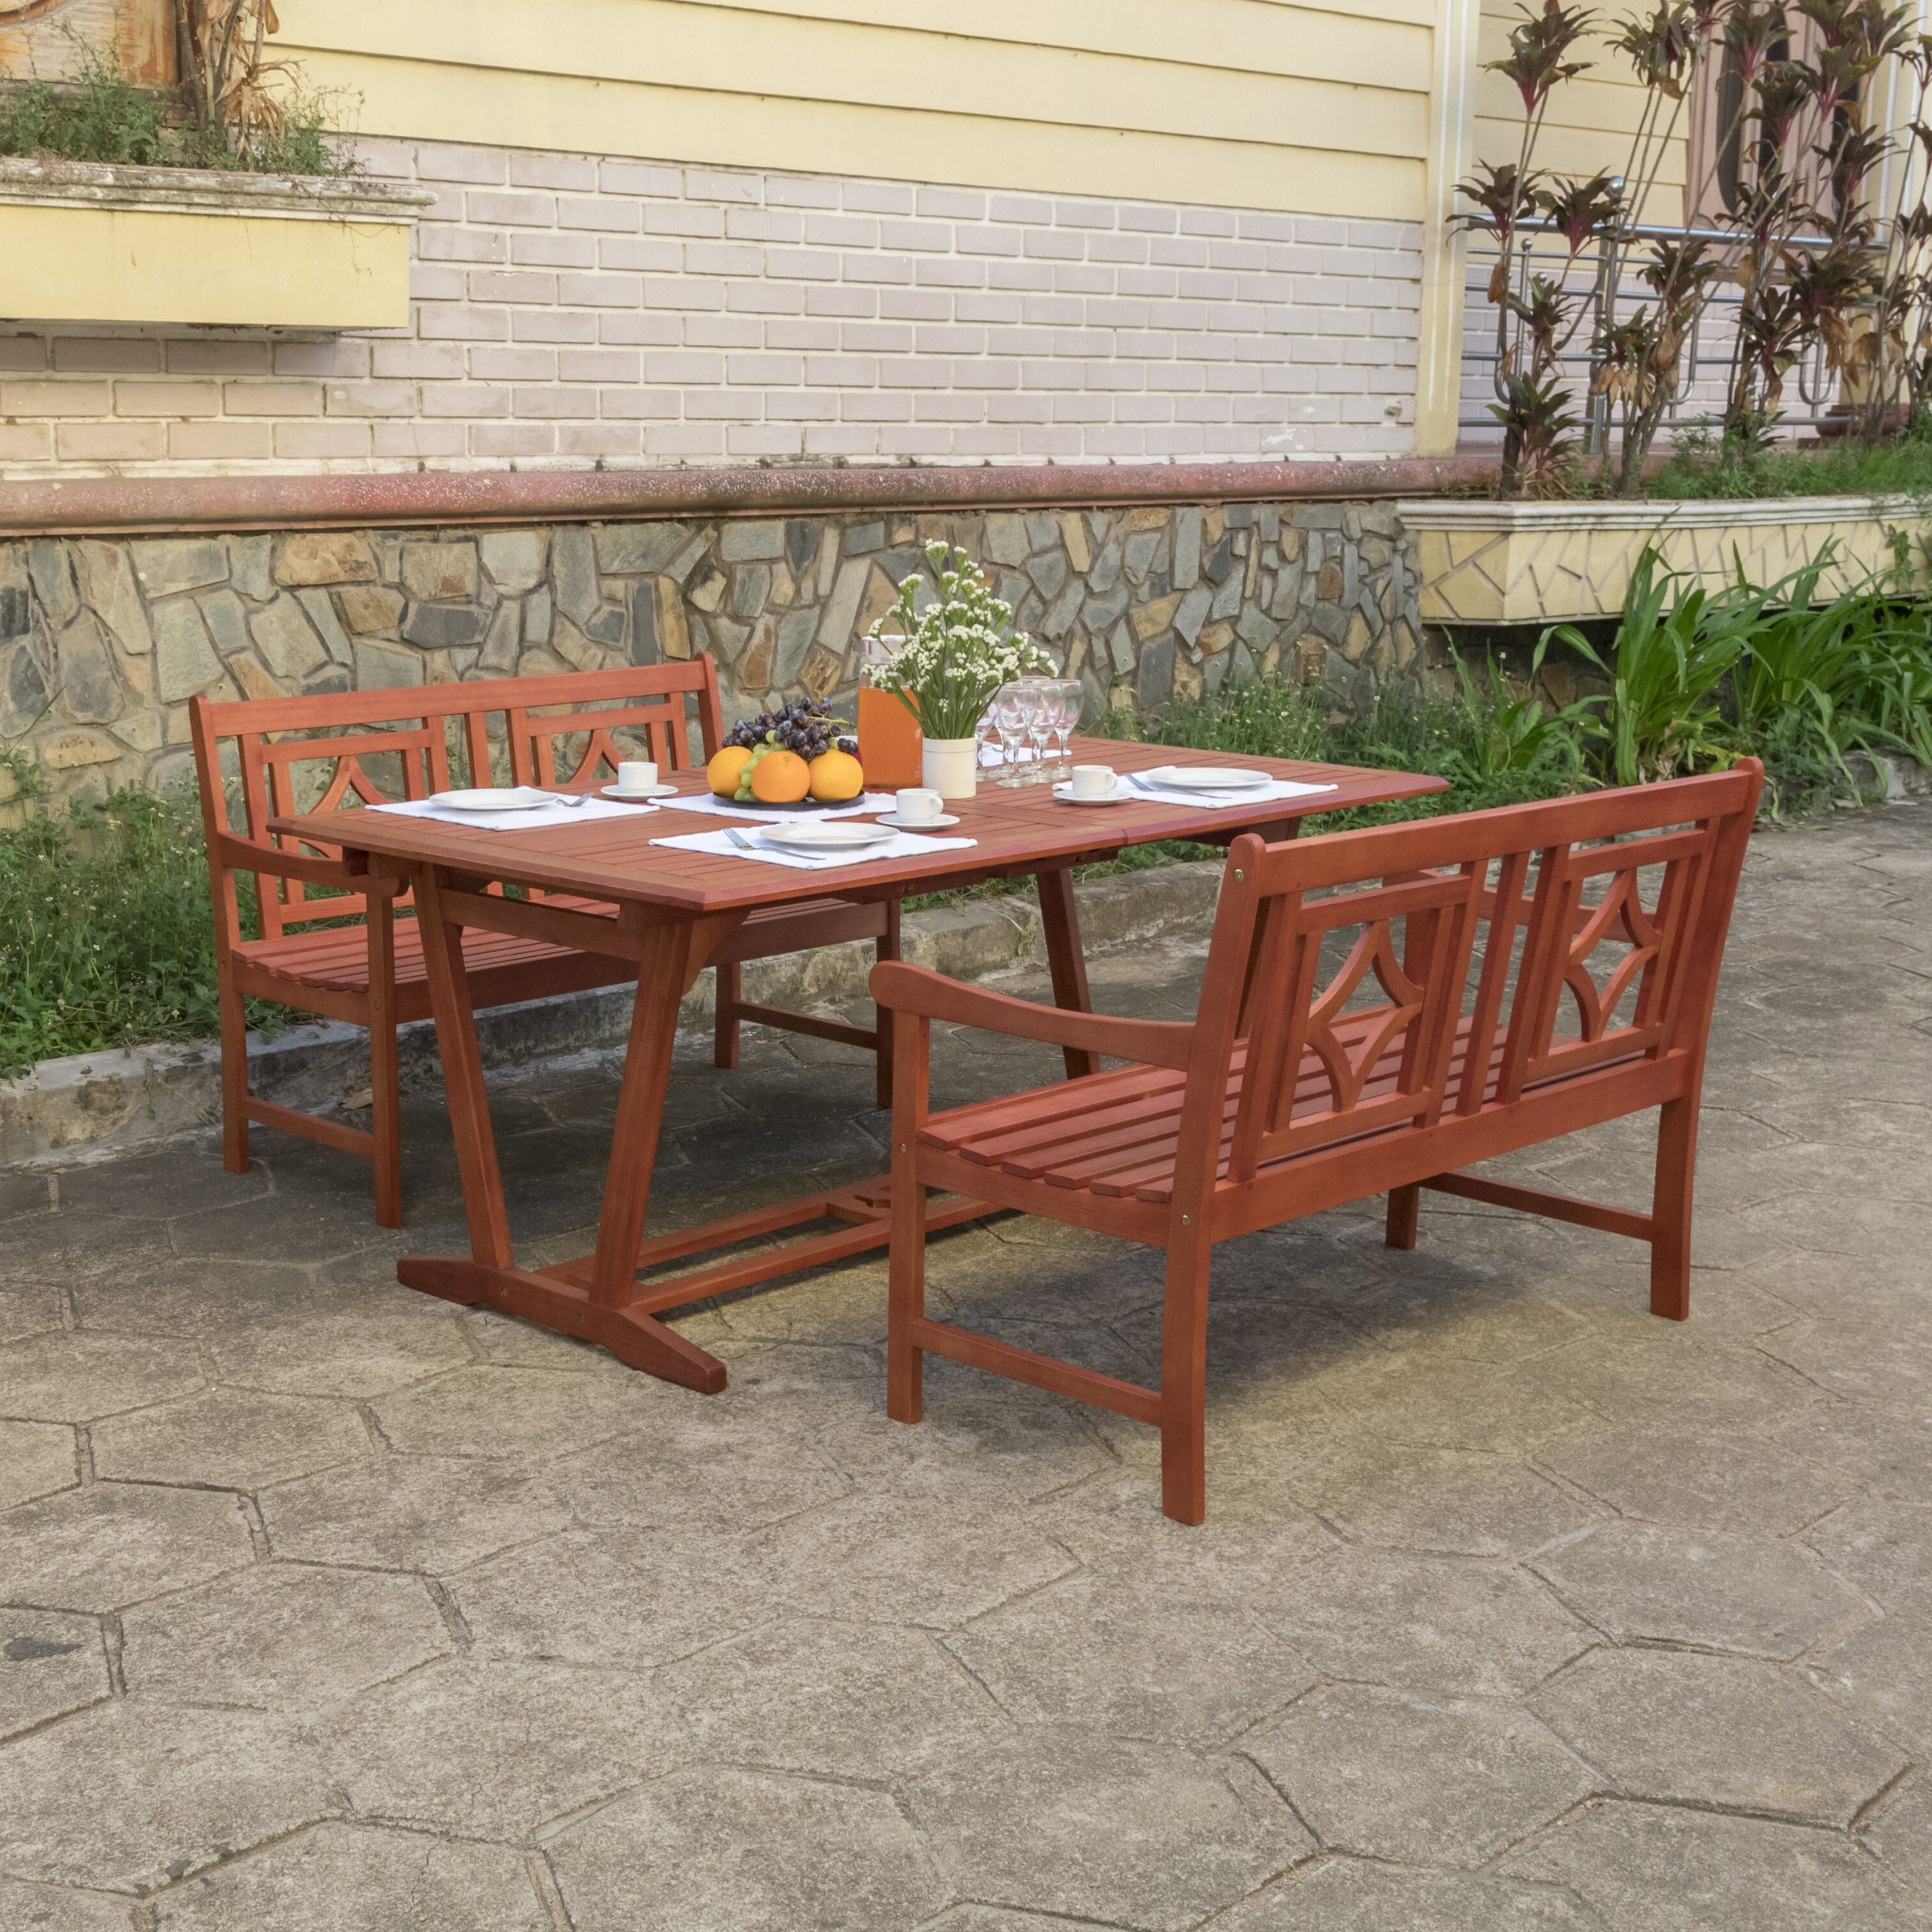 Best And Newest Amabel 3 Piece Patio Dining Set Inside Amabel Patio Diamond Wooden Garden Benches (View 9 of 30)